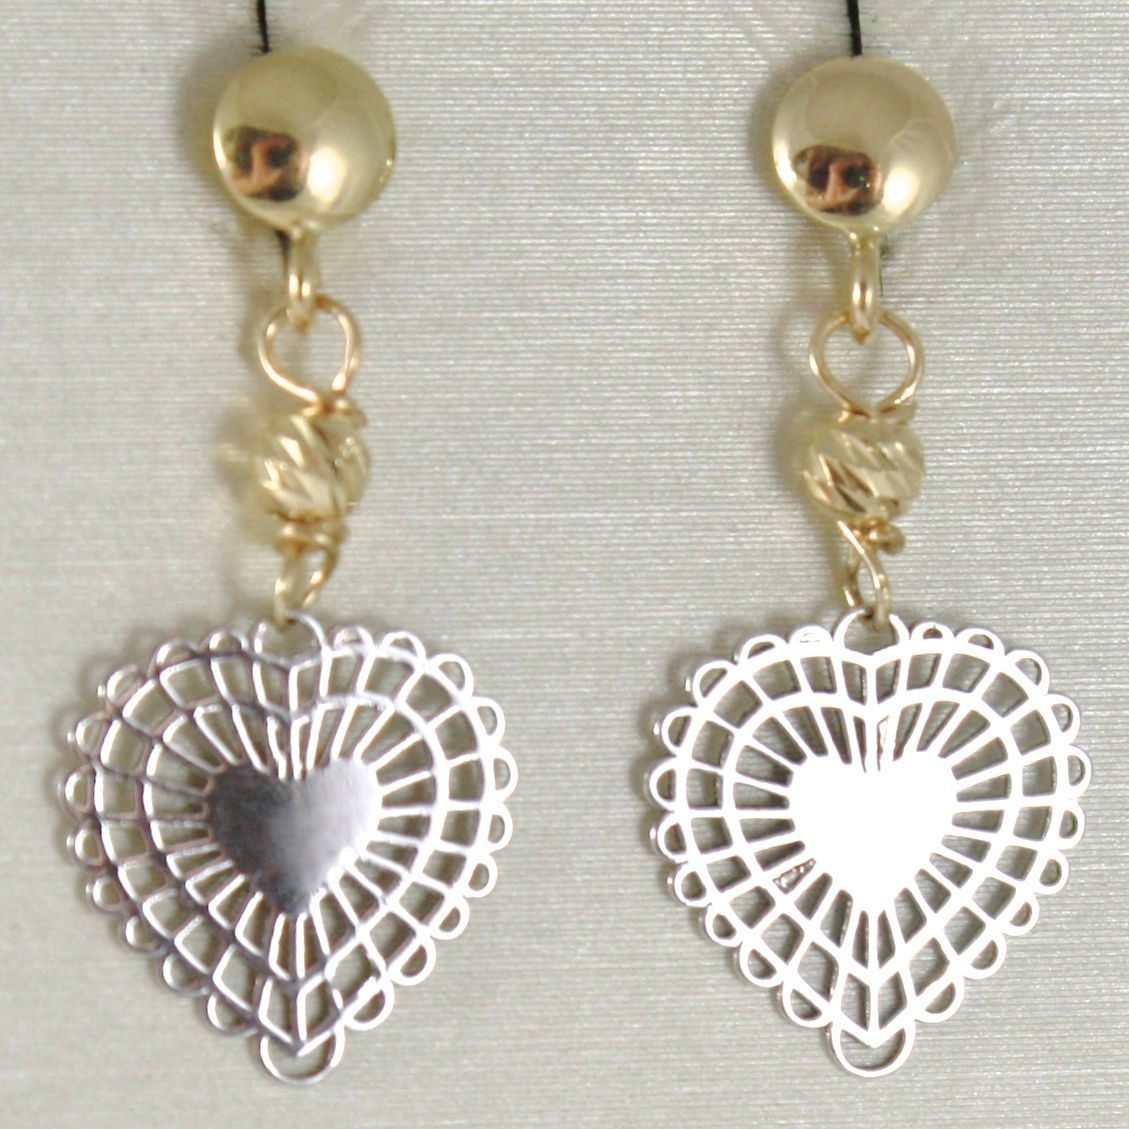 YELLOW GOLD EARRINGS AND WHITE 750 18K, HANGING, WITH SPHERES AND HEARTS WORKED